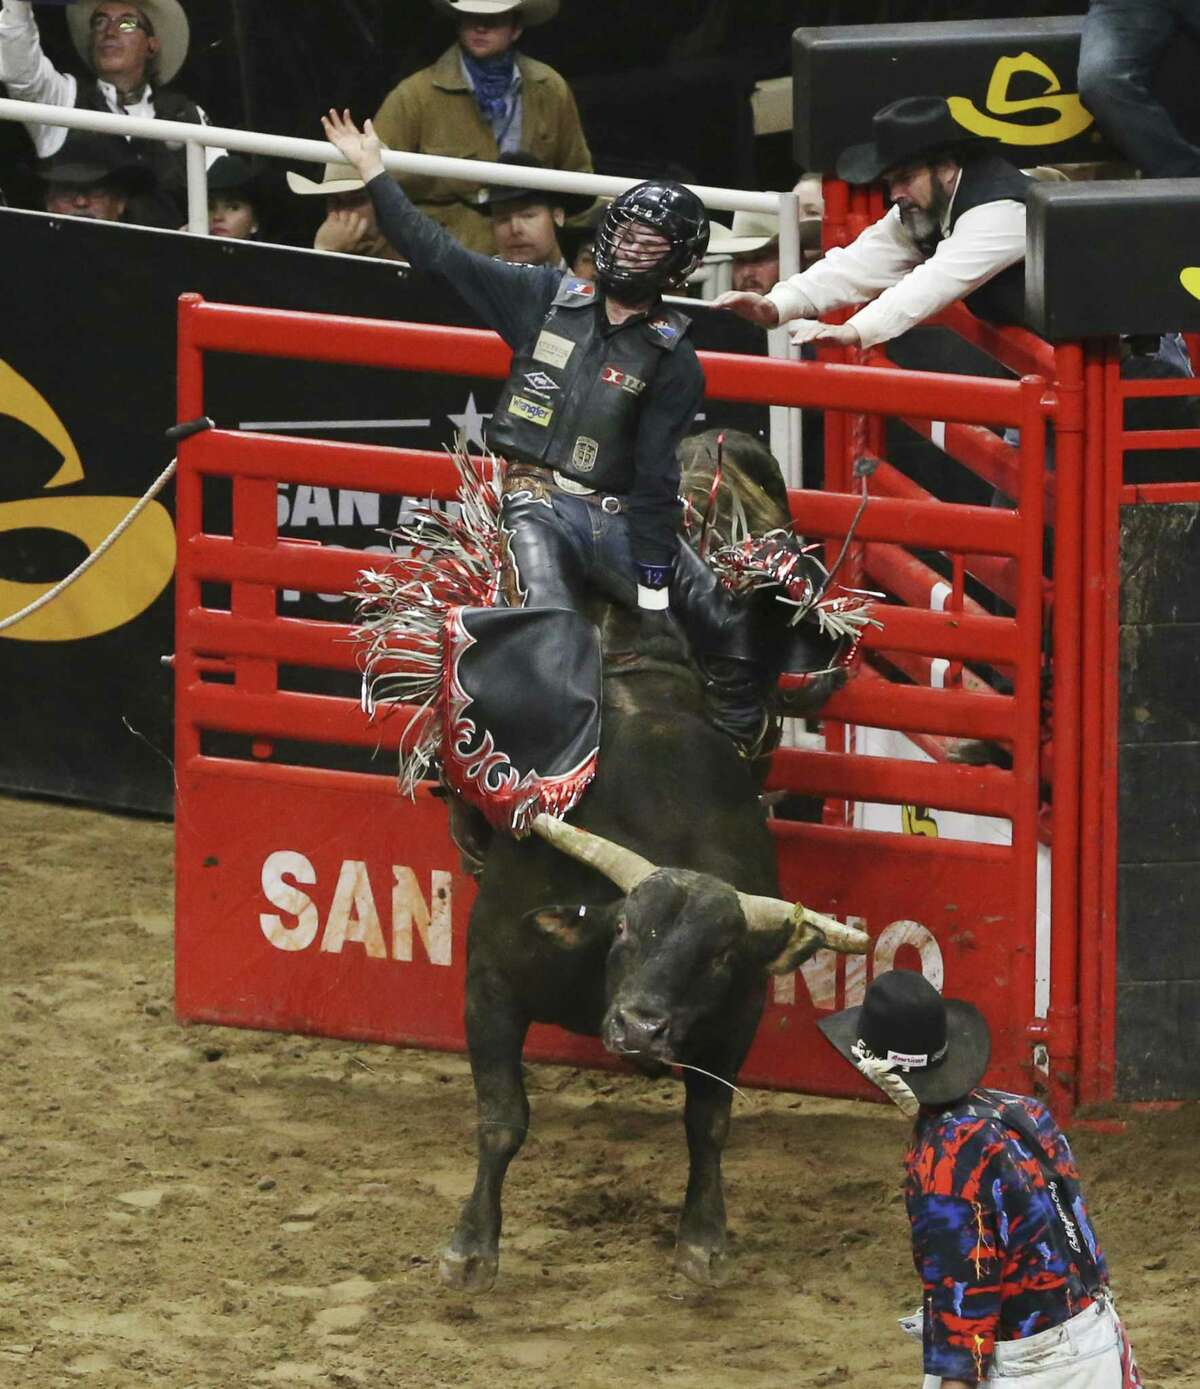 Stetson Wright of Beaver, Utah rides a bull named, House of Pain, at the San Antonio Rodeo on Wednesday, Feb. 20, 2019. Though Wright's family all compete in saddle bronc, the 19-year-old has chosen the path of bull riding instead. (Kin Man Hui/San Antonio Express-News)